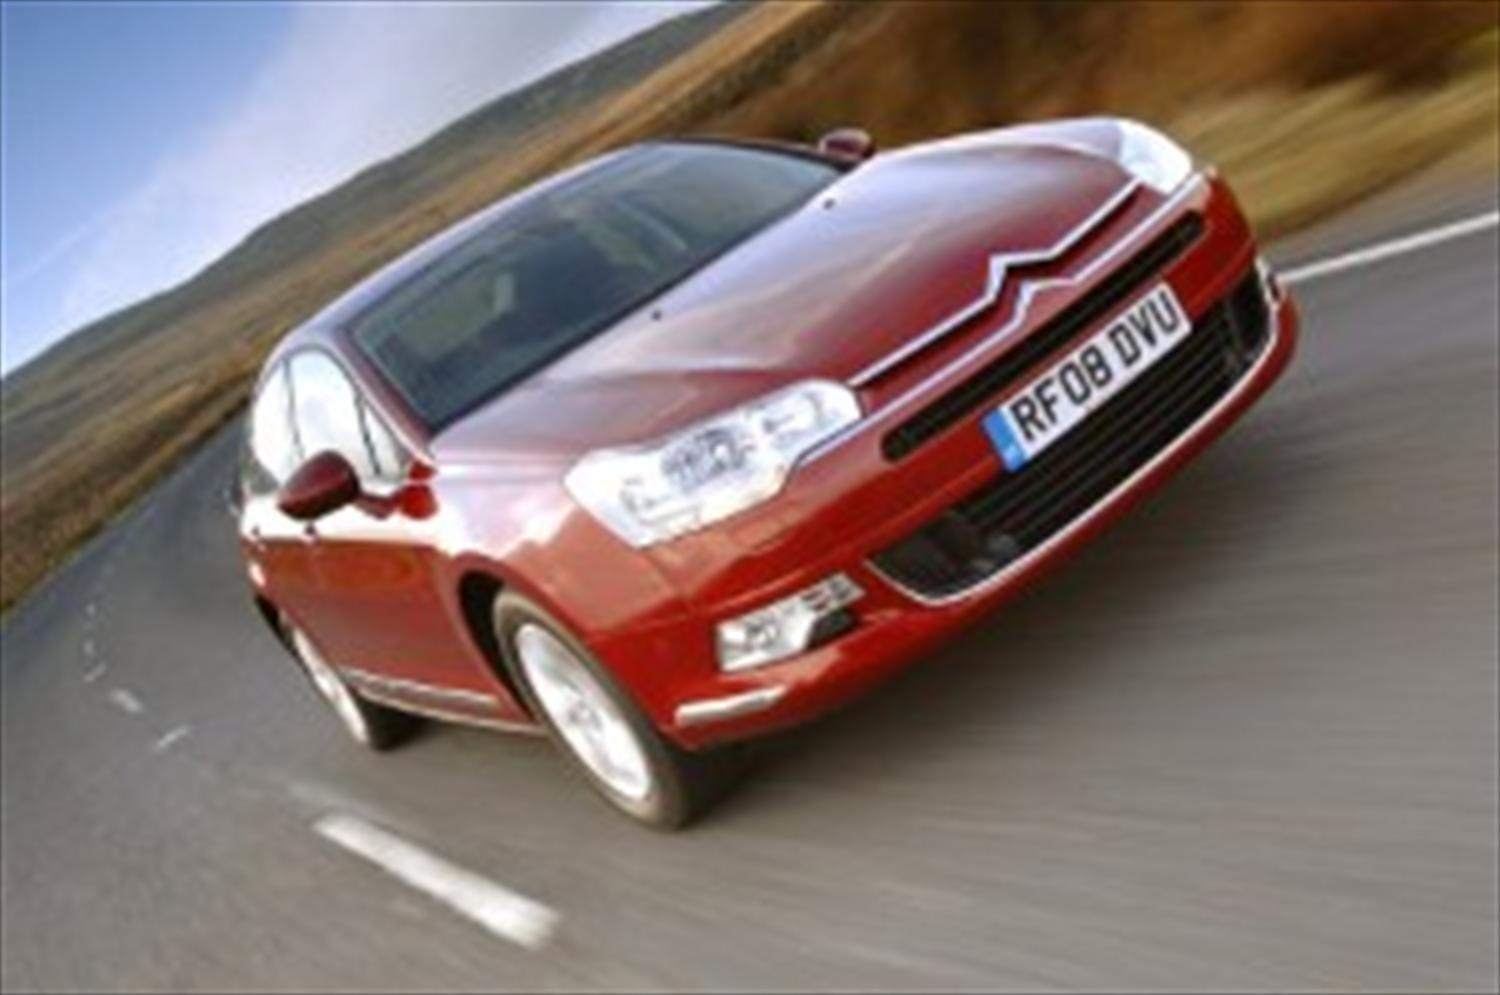 Citroen Green Cars to Feature Engine Upgrades from October 2010